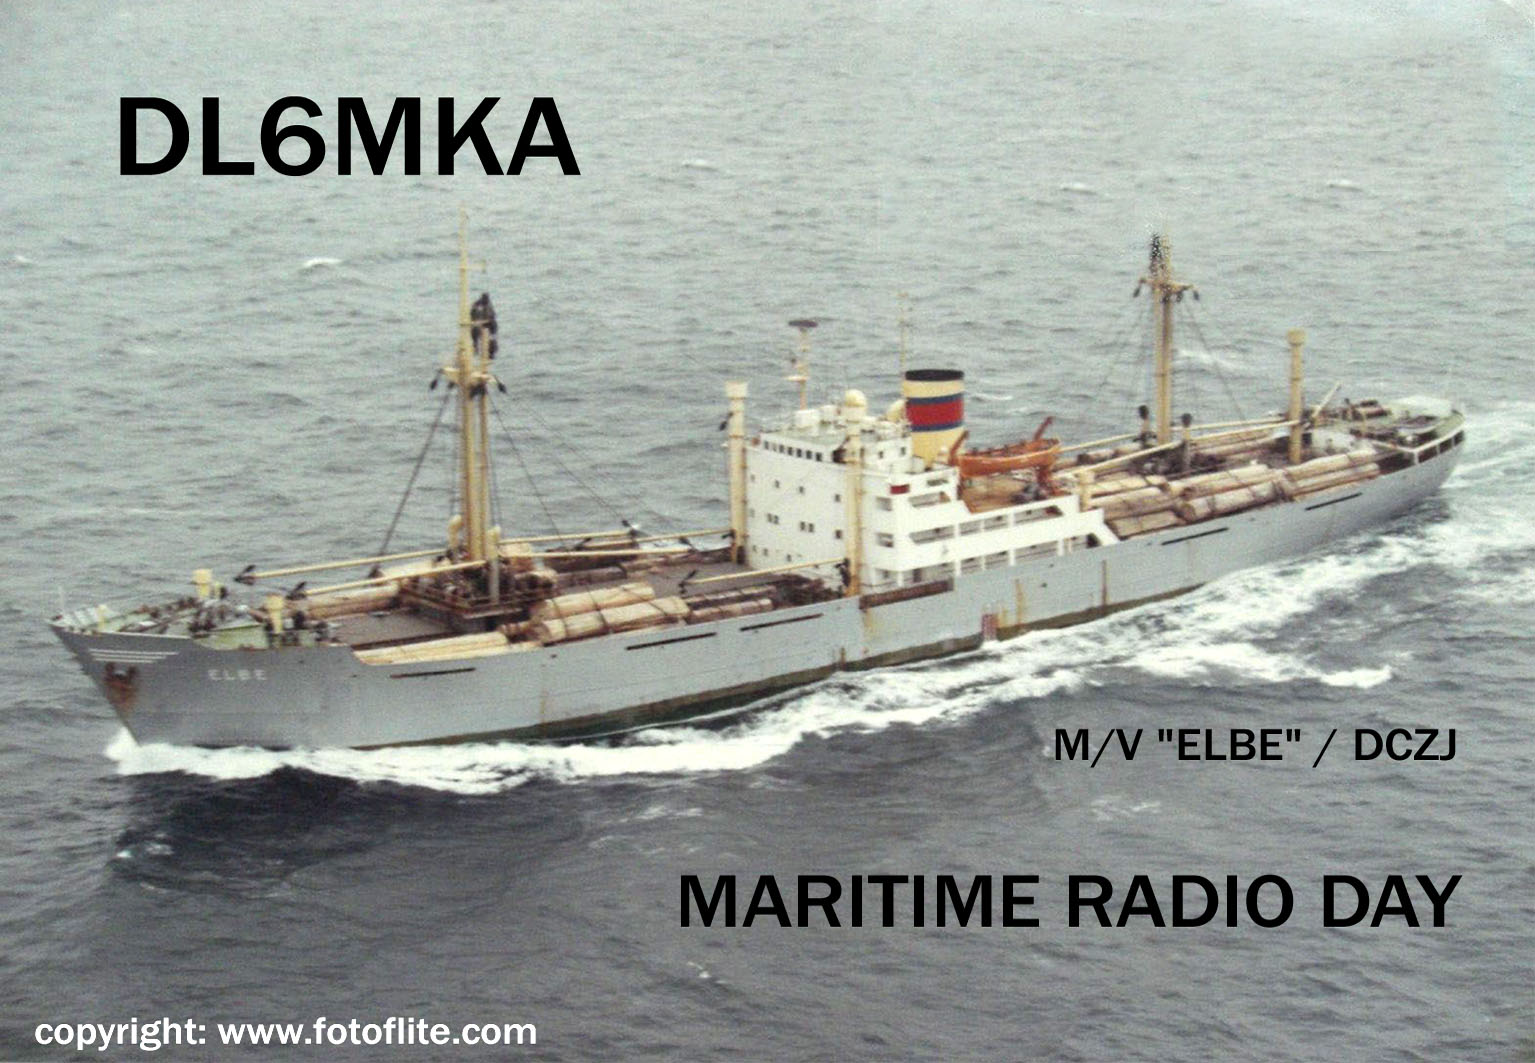 QSL image for DL6MKA